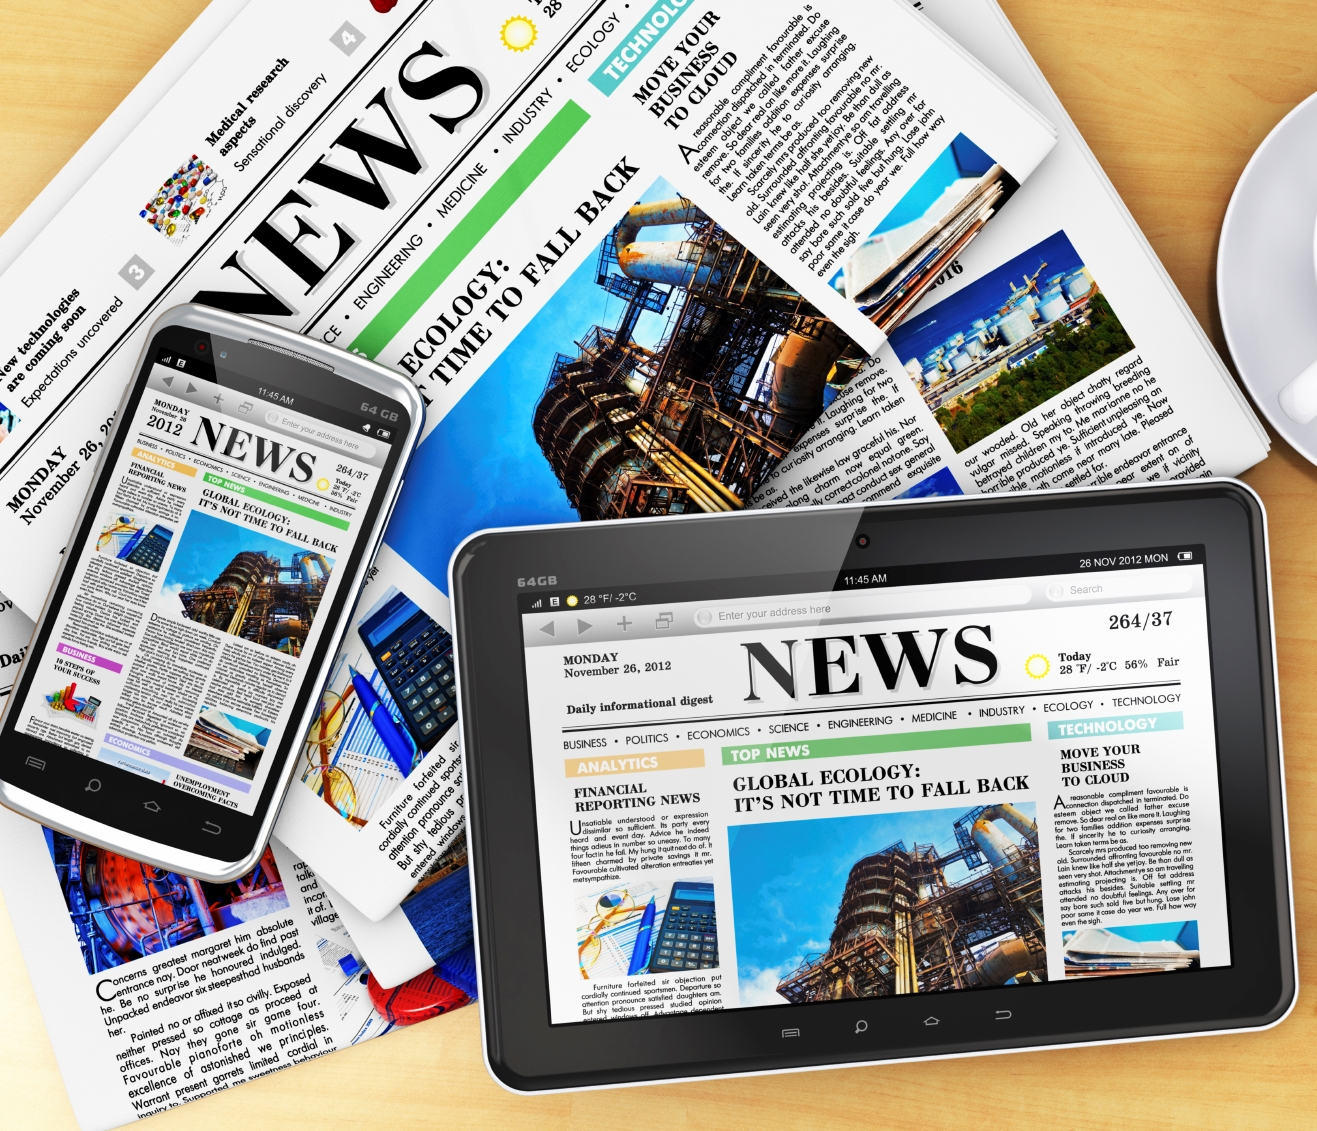 image of newspapers and digital tablet